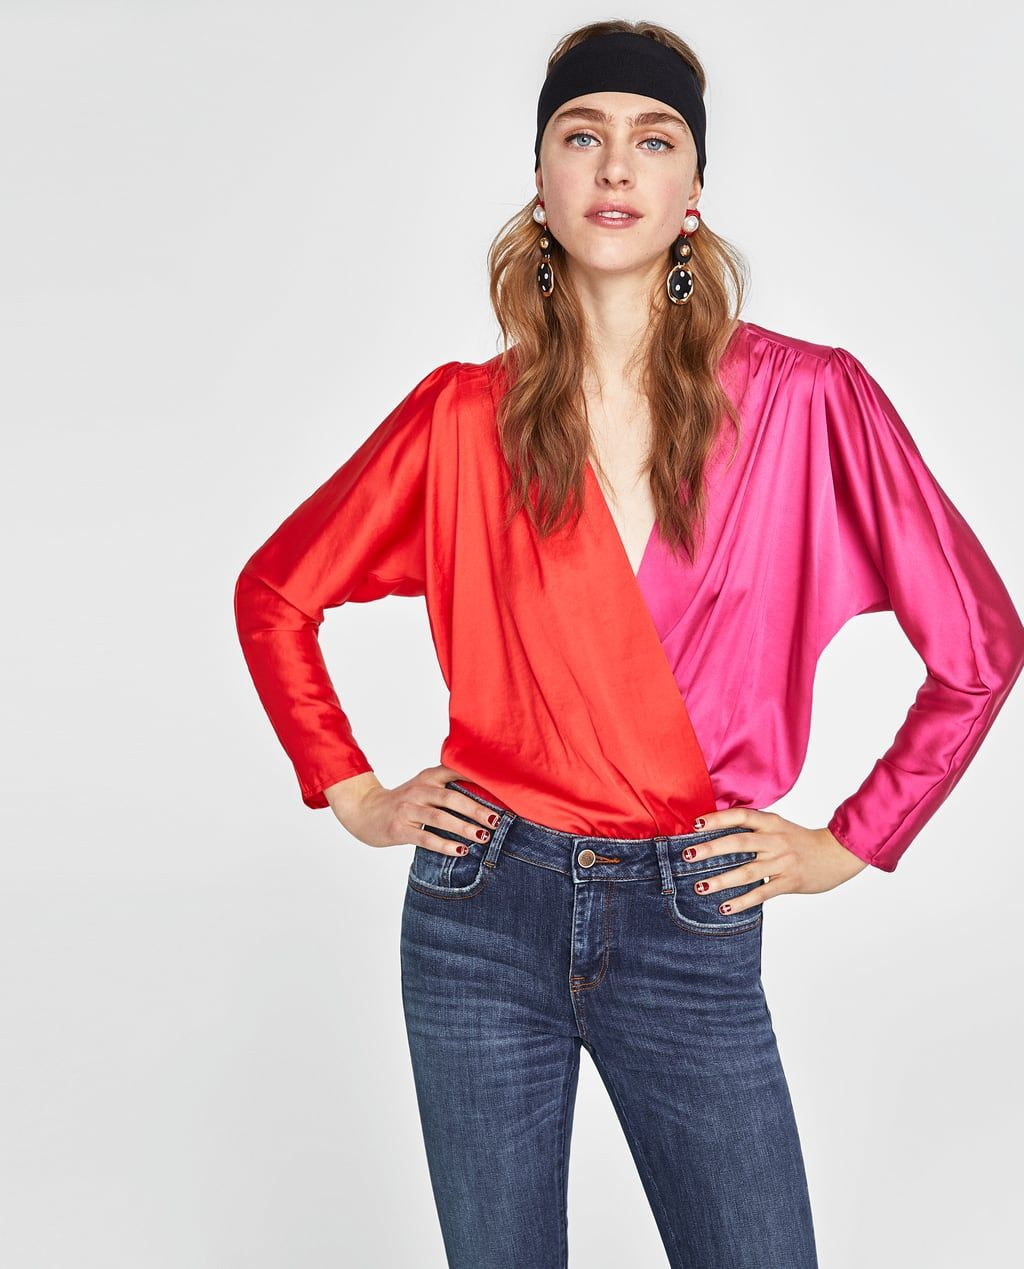 RIPPED SKINNY JEANSNEW INWOMANNEW COLLECTION ZARA